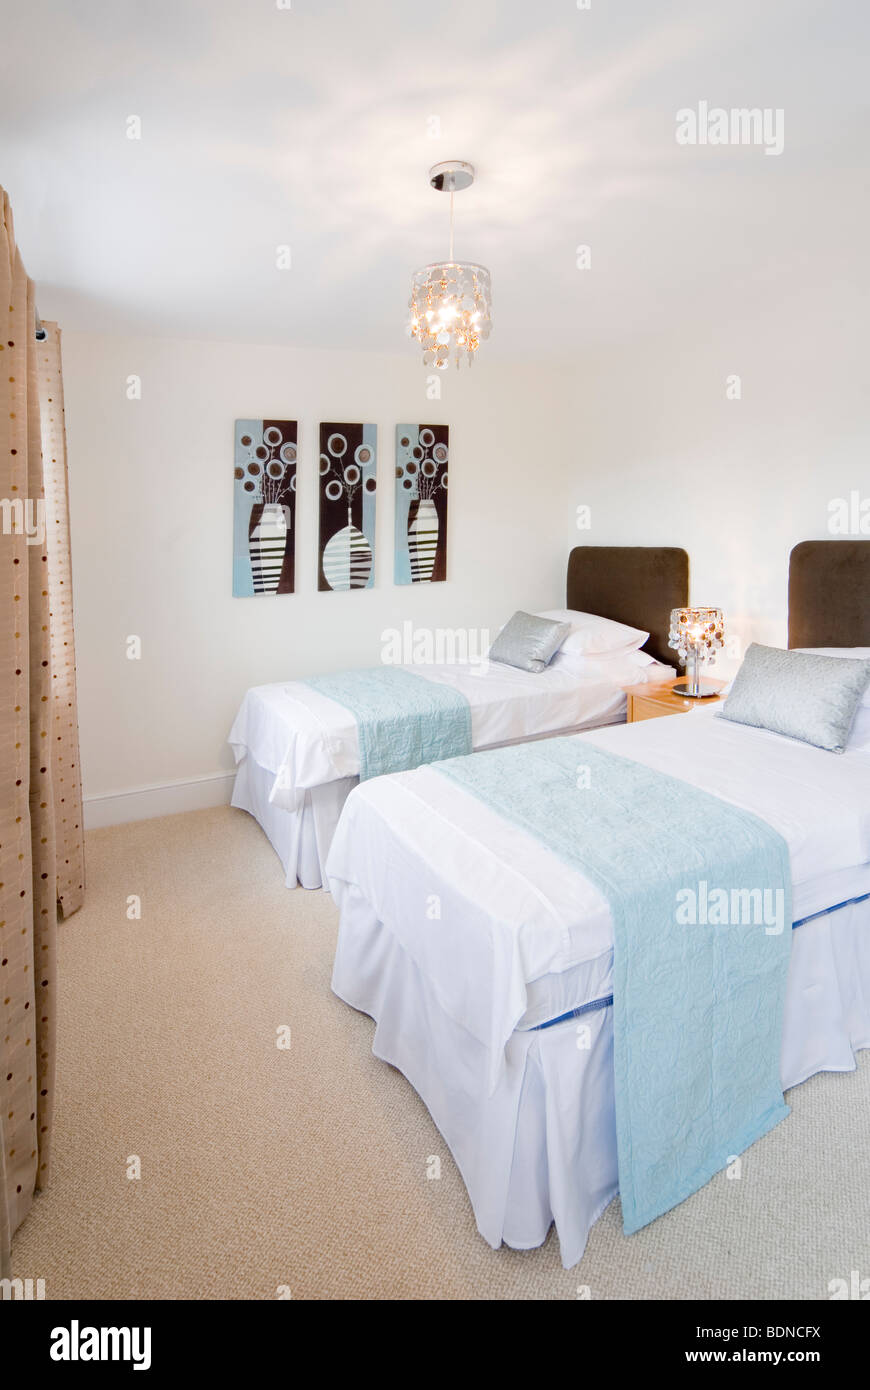 Twin Beds In Spare Room Stockfotos & Twin Beds In Spare Room Bilder ...